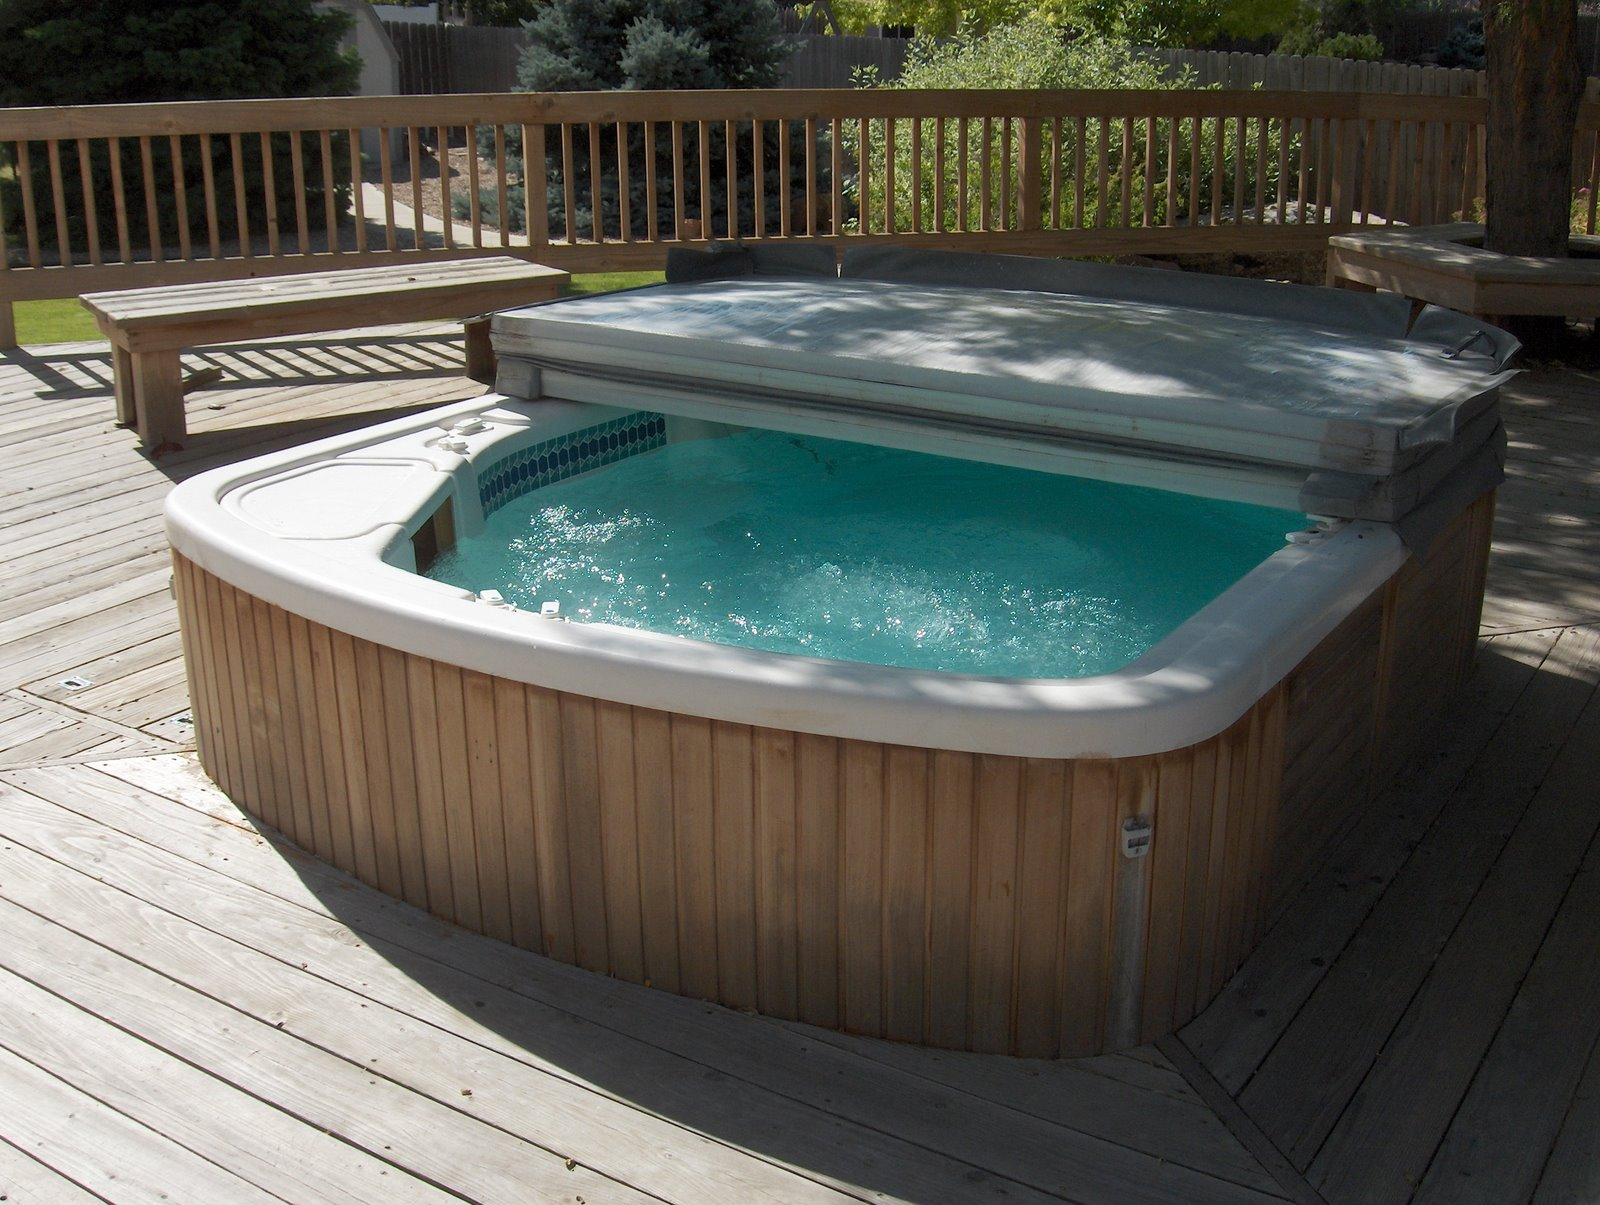 Removing a Hot Tub from a Deck | Lee Devlin\'s Website